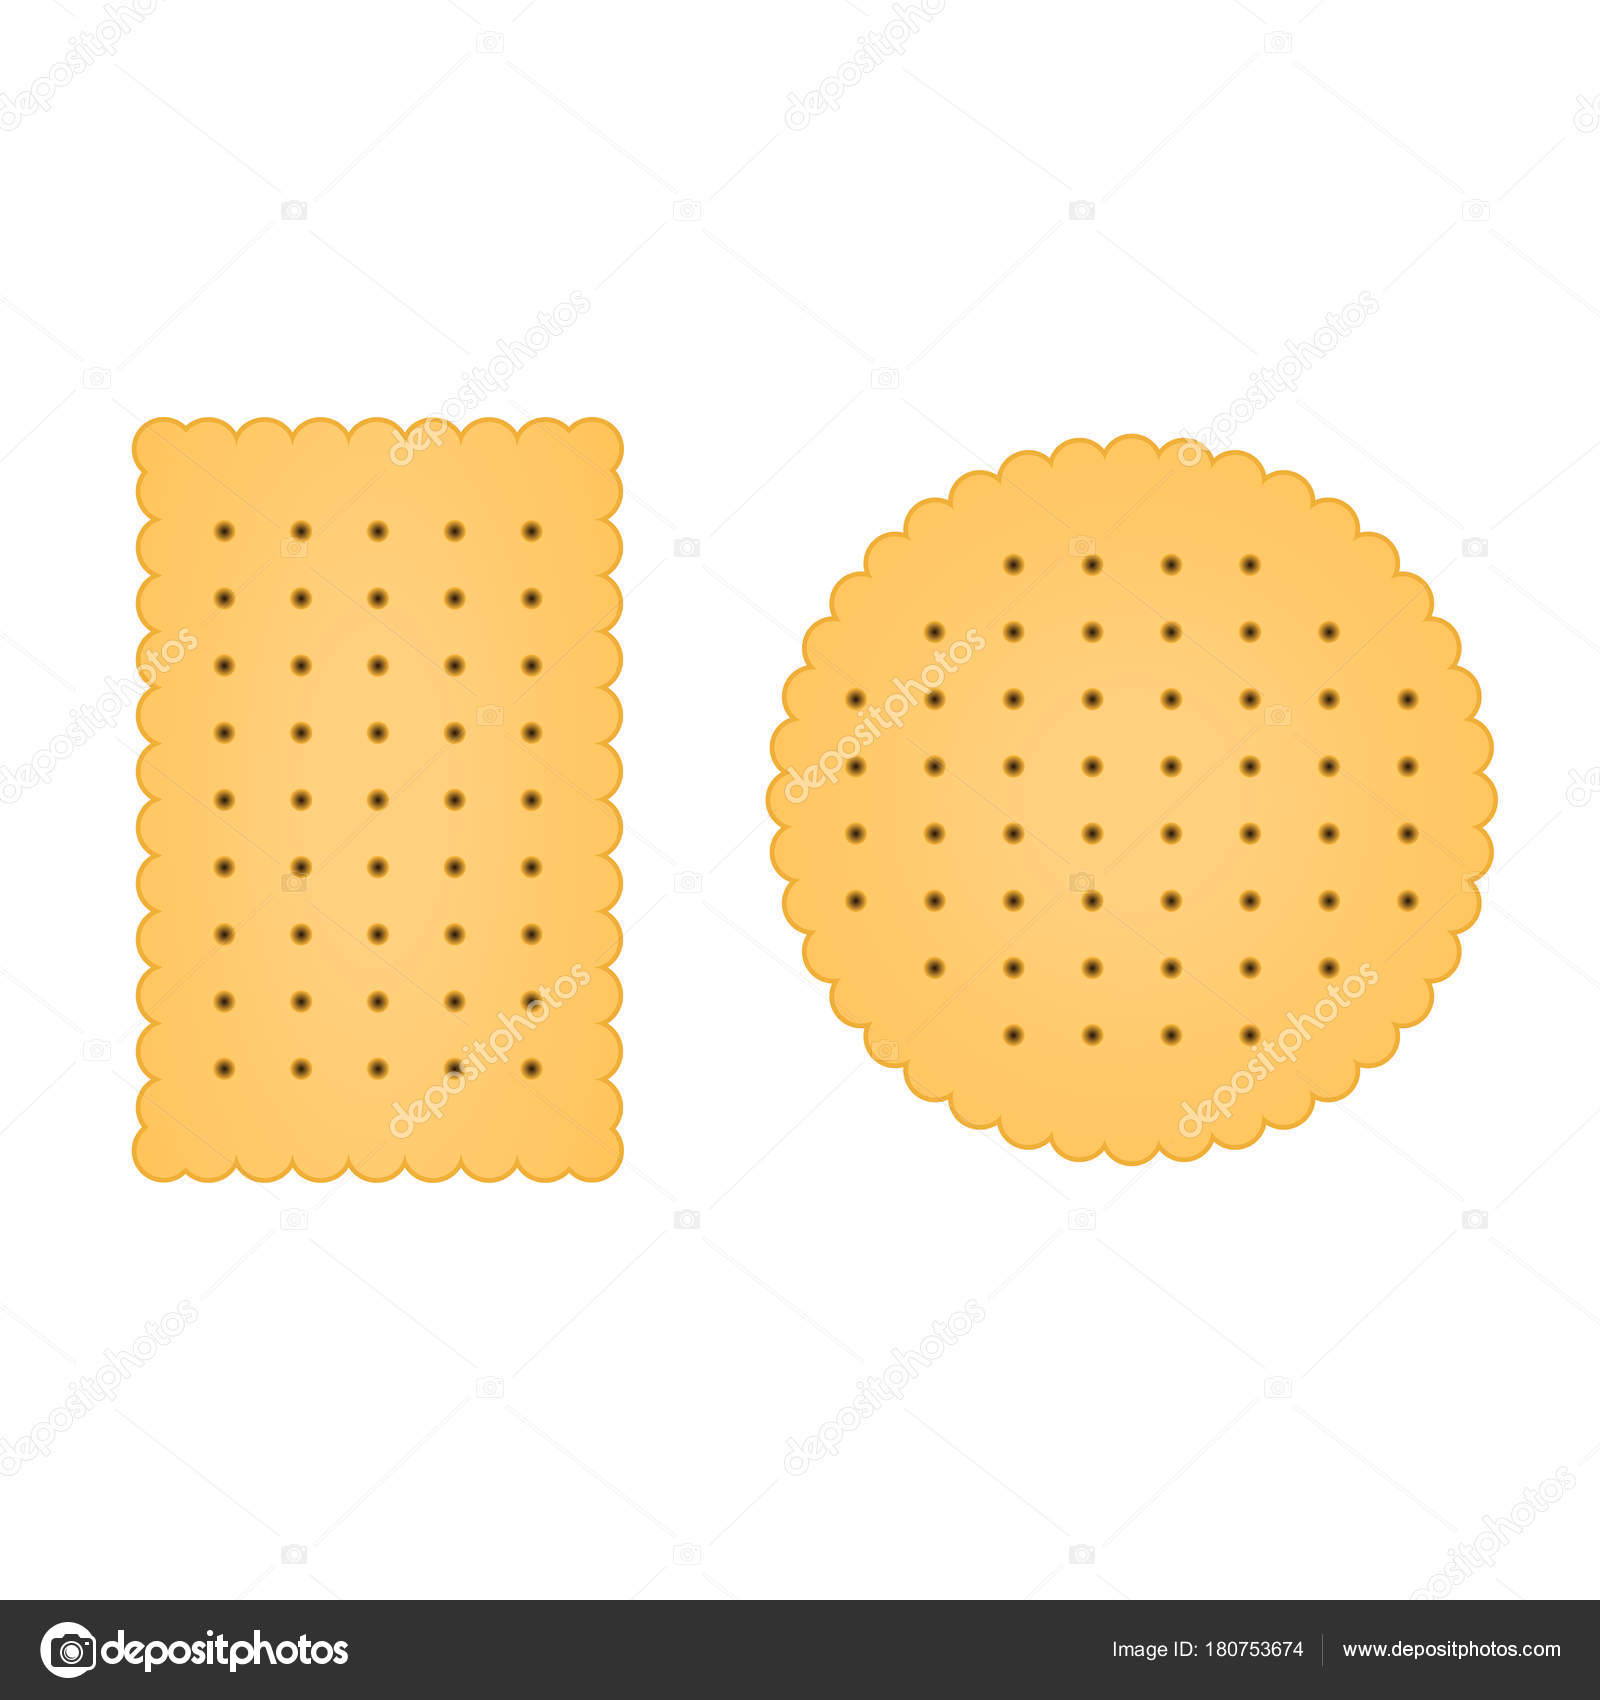 flat biscuit icon biscuit vector stock vector c brigada915 gmail com 180753674 https depositphotos com 180753674 stock illustration flat biscuit icon biscuit vector html